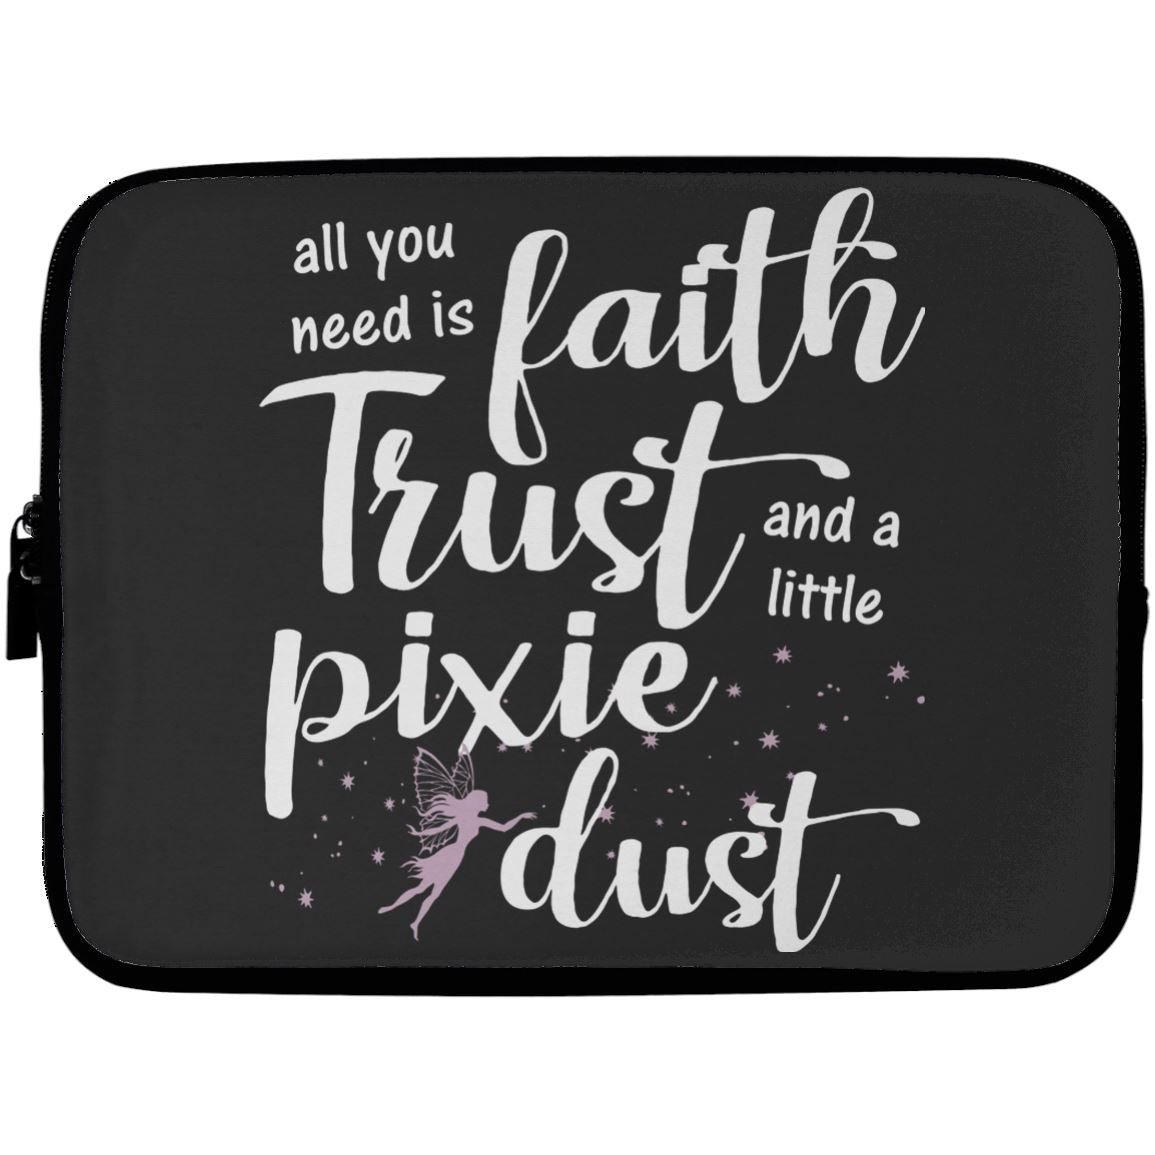 Pixie Dust Fairy Laptop Sleeve Apparel Laptop Sleeve - 10 inch Black One Size